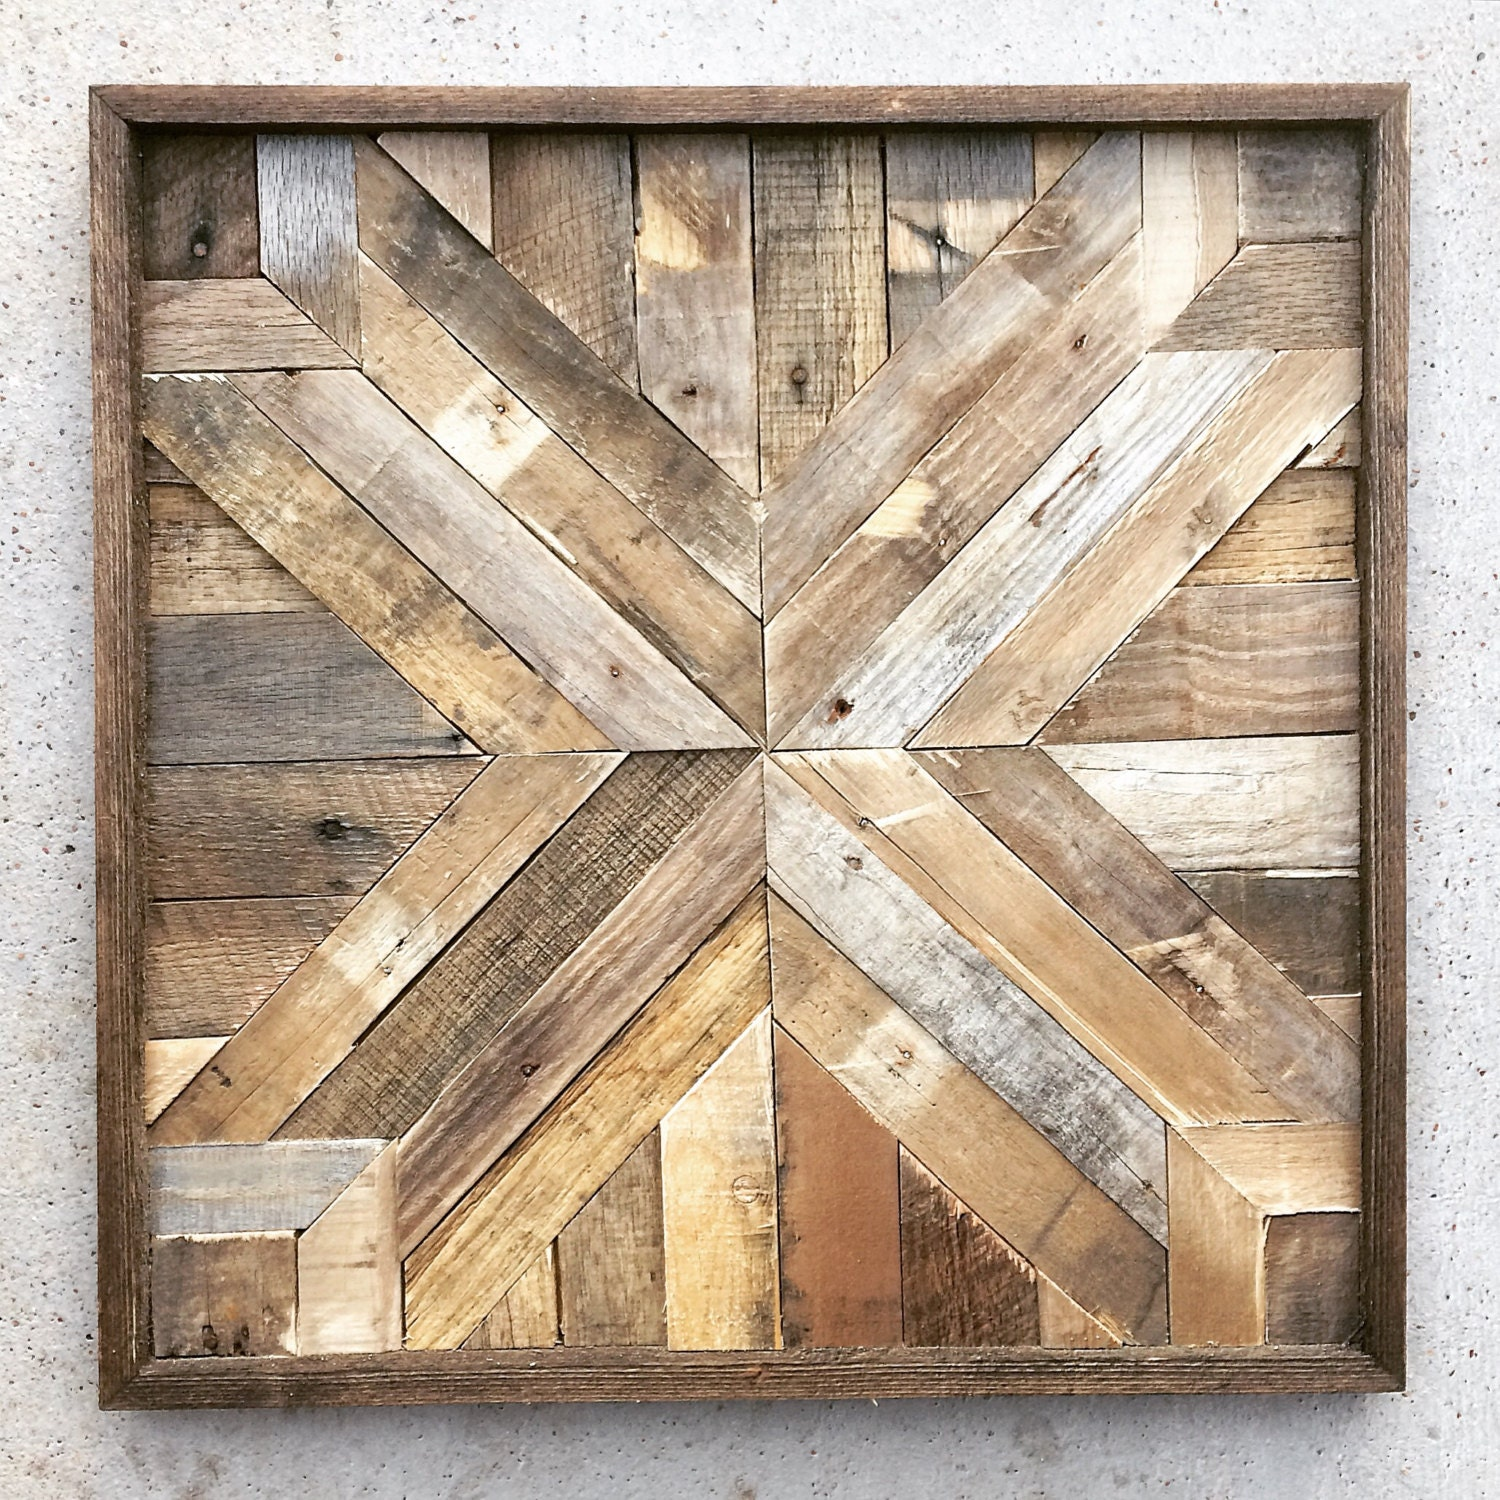 Wall Art With Barn Wood : Reclaimed wood wall art barn